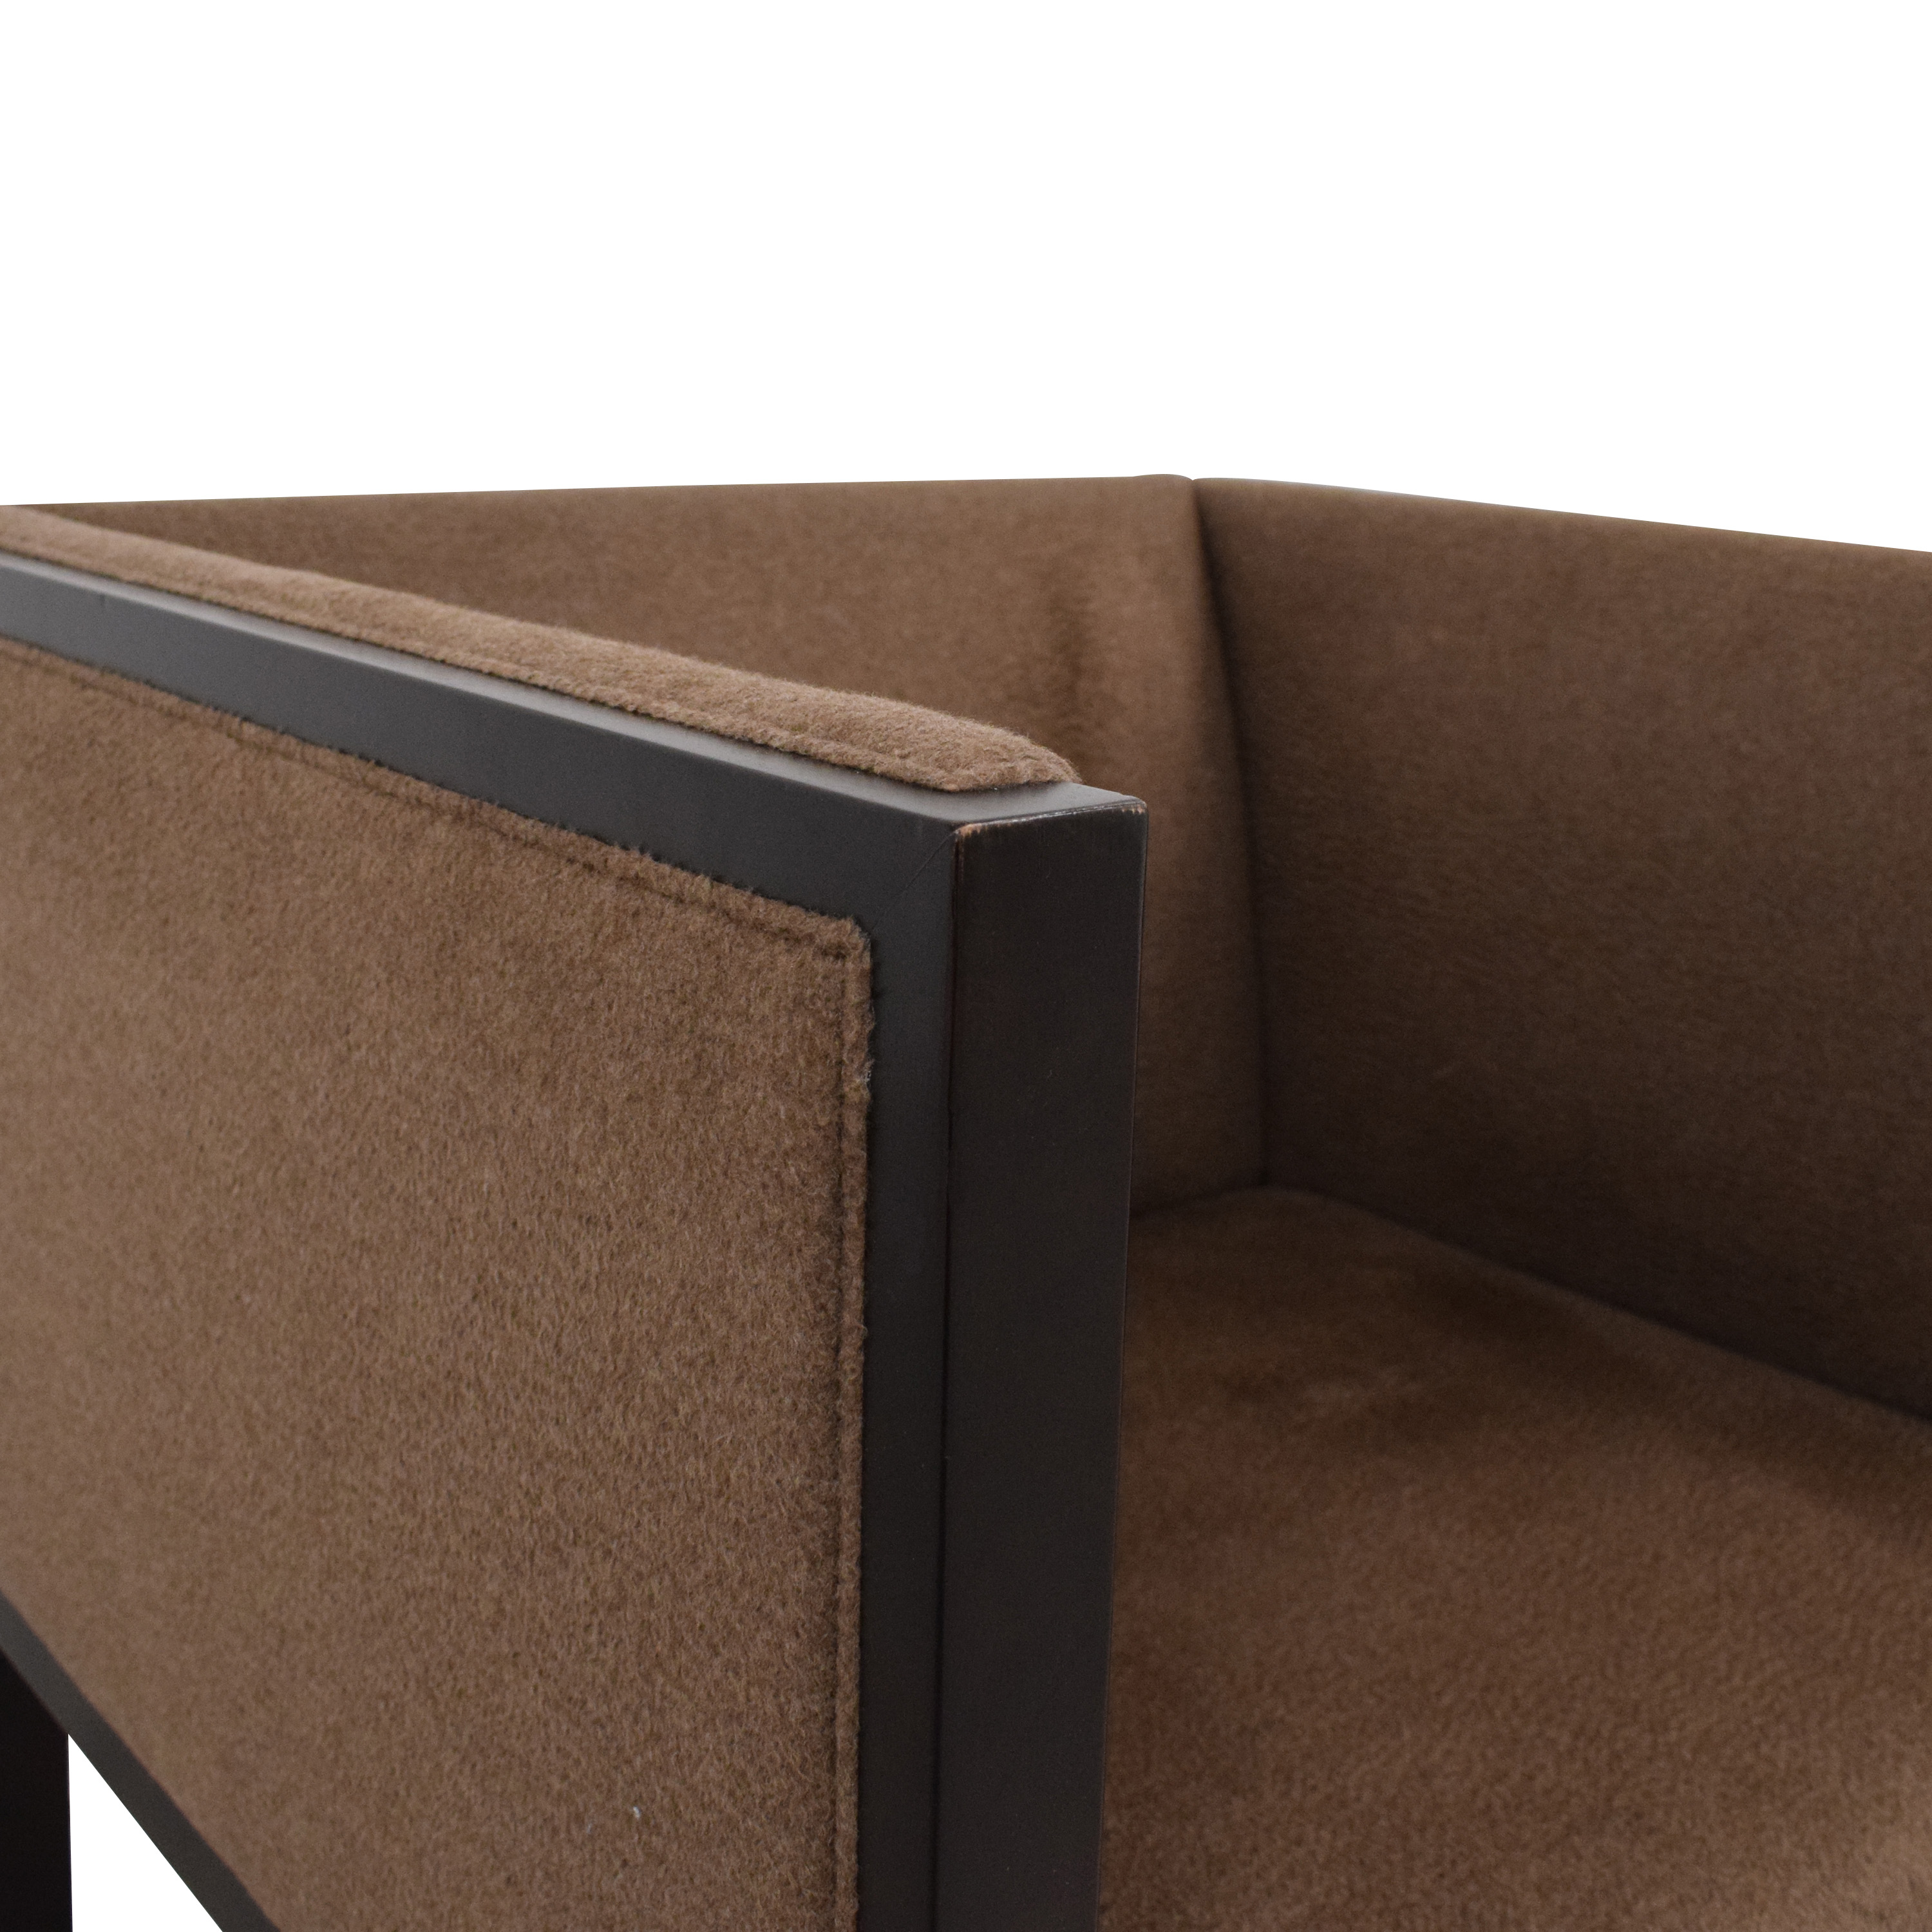 Hudson Furniture & Bedding Hudson Furniture & Bedding Contemporary Accent Chair Chairs